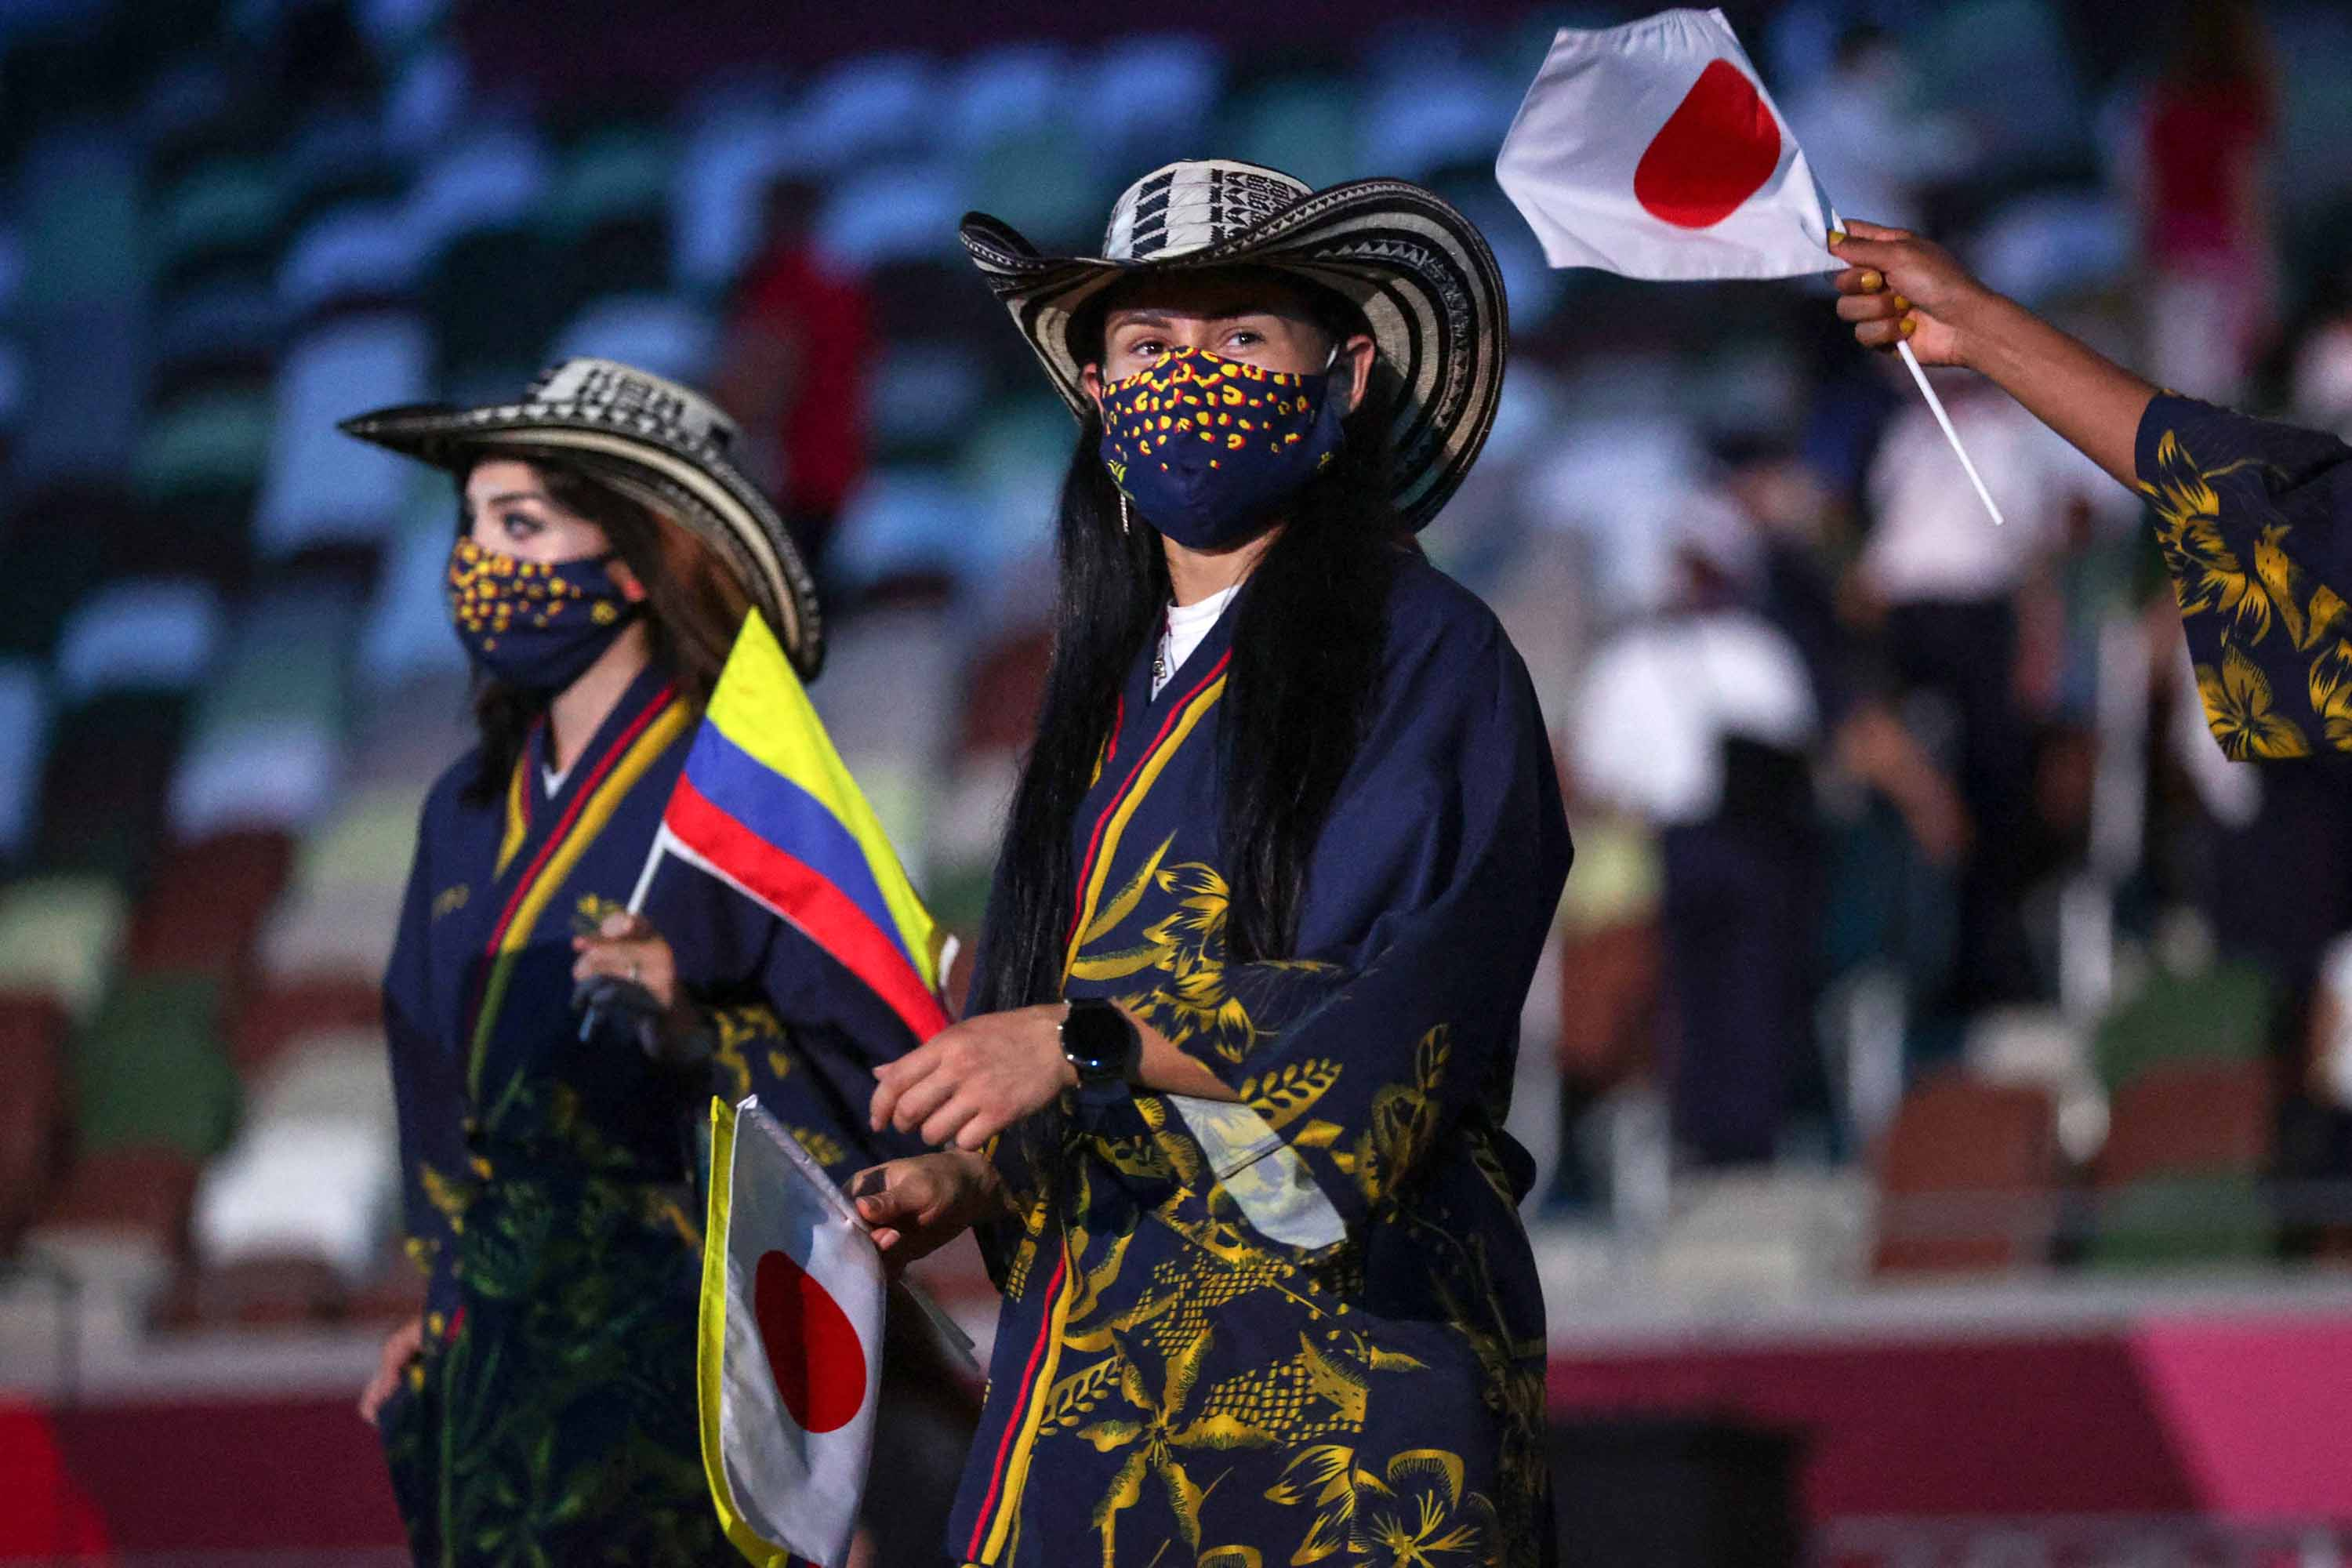 Members of Colombia's delegation enter the Olympic Stadium during the Opening Ceremony.